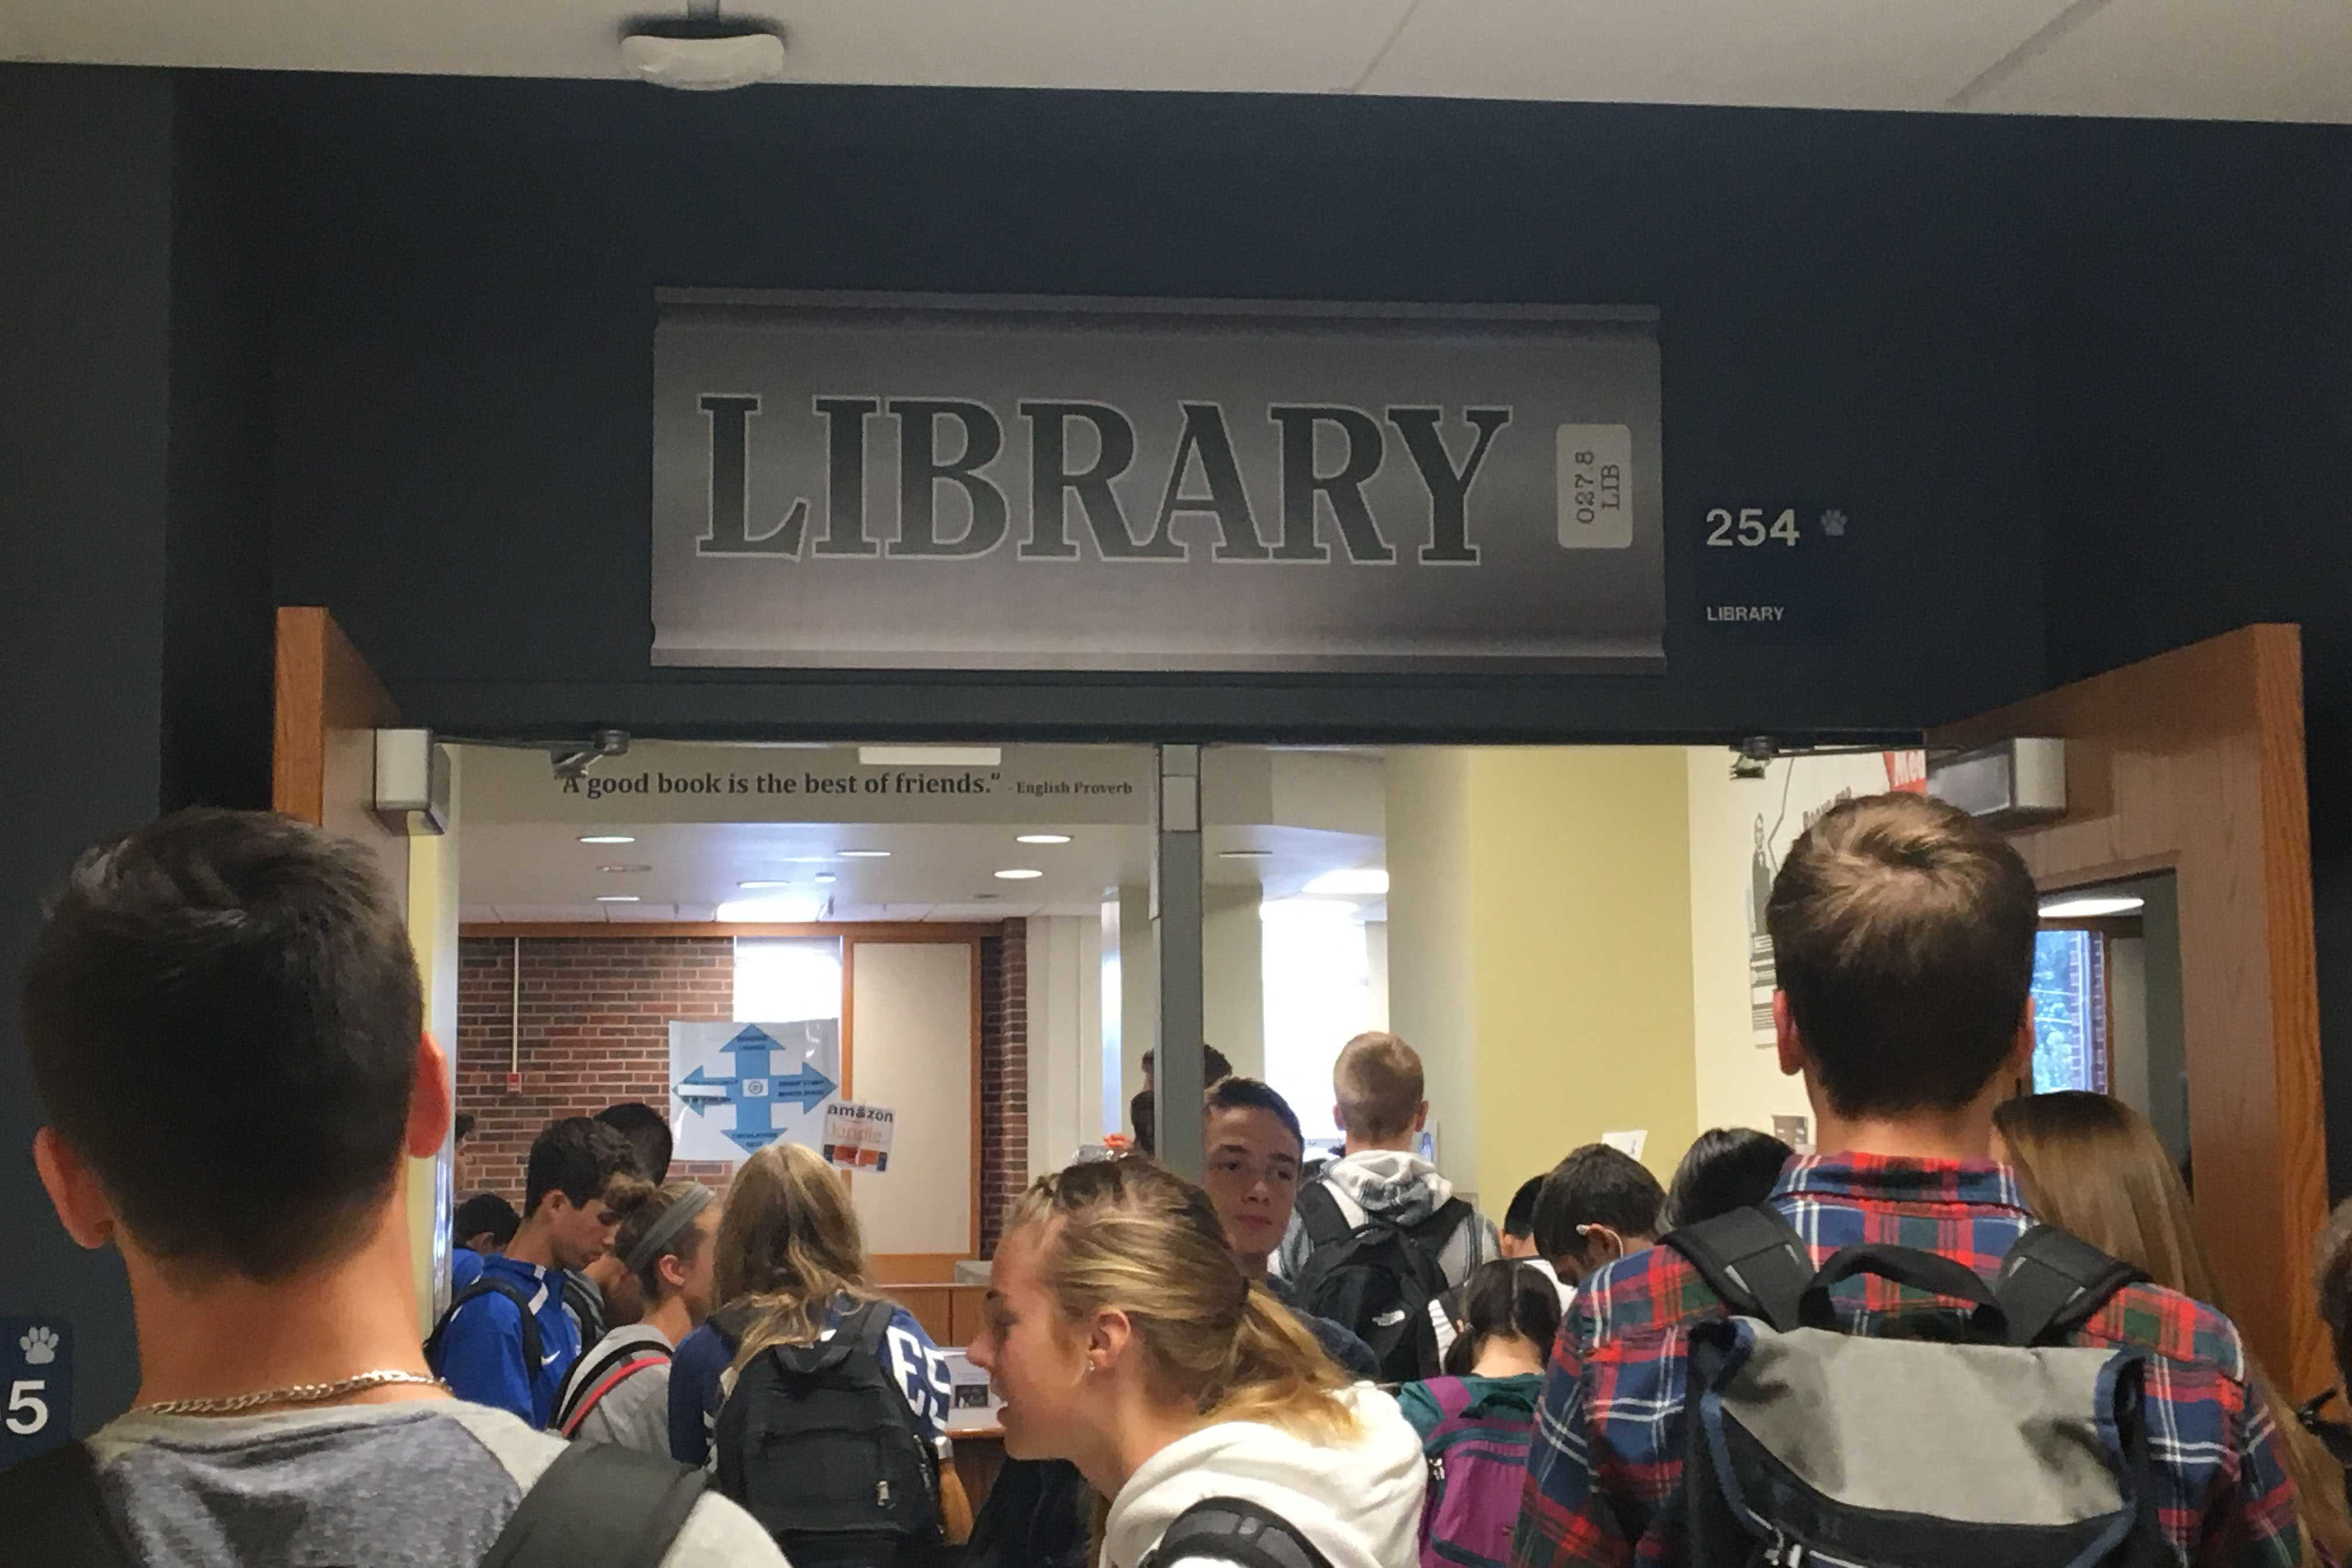 Students gather by library door waiting for it to open